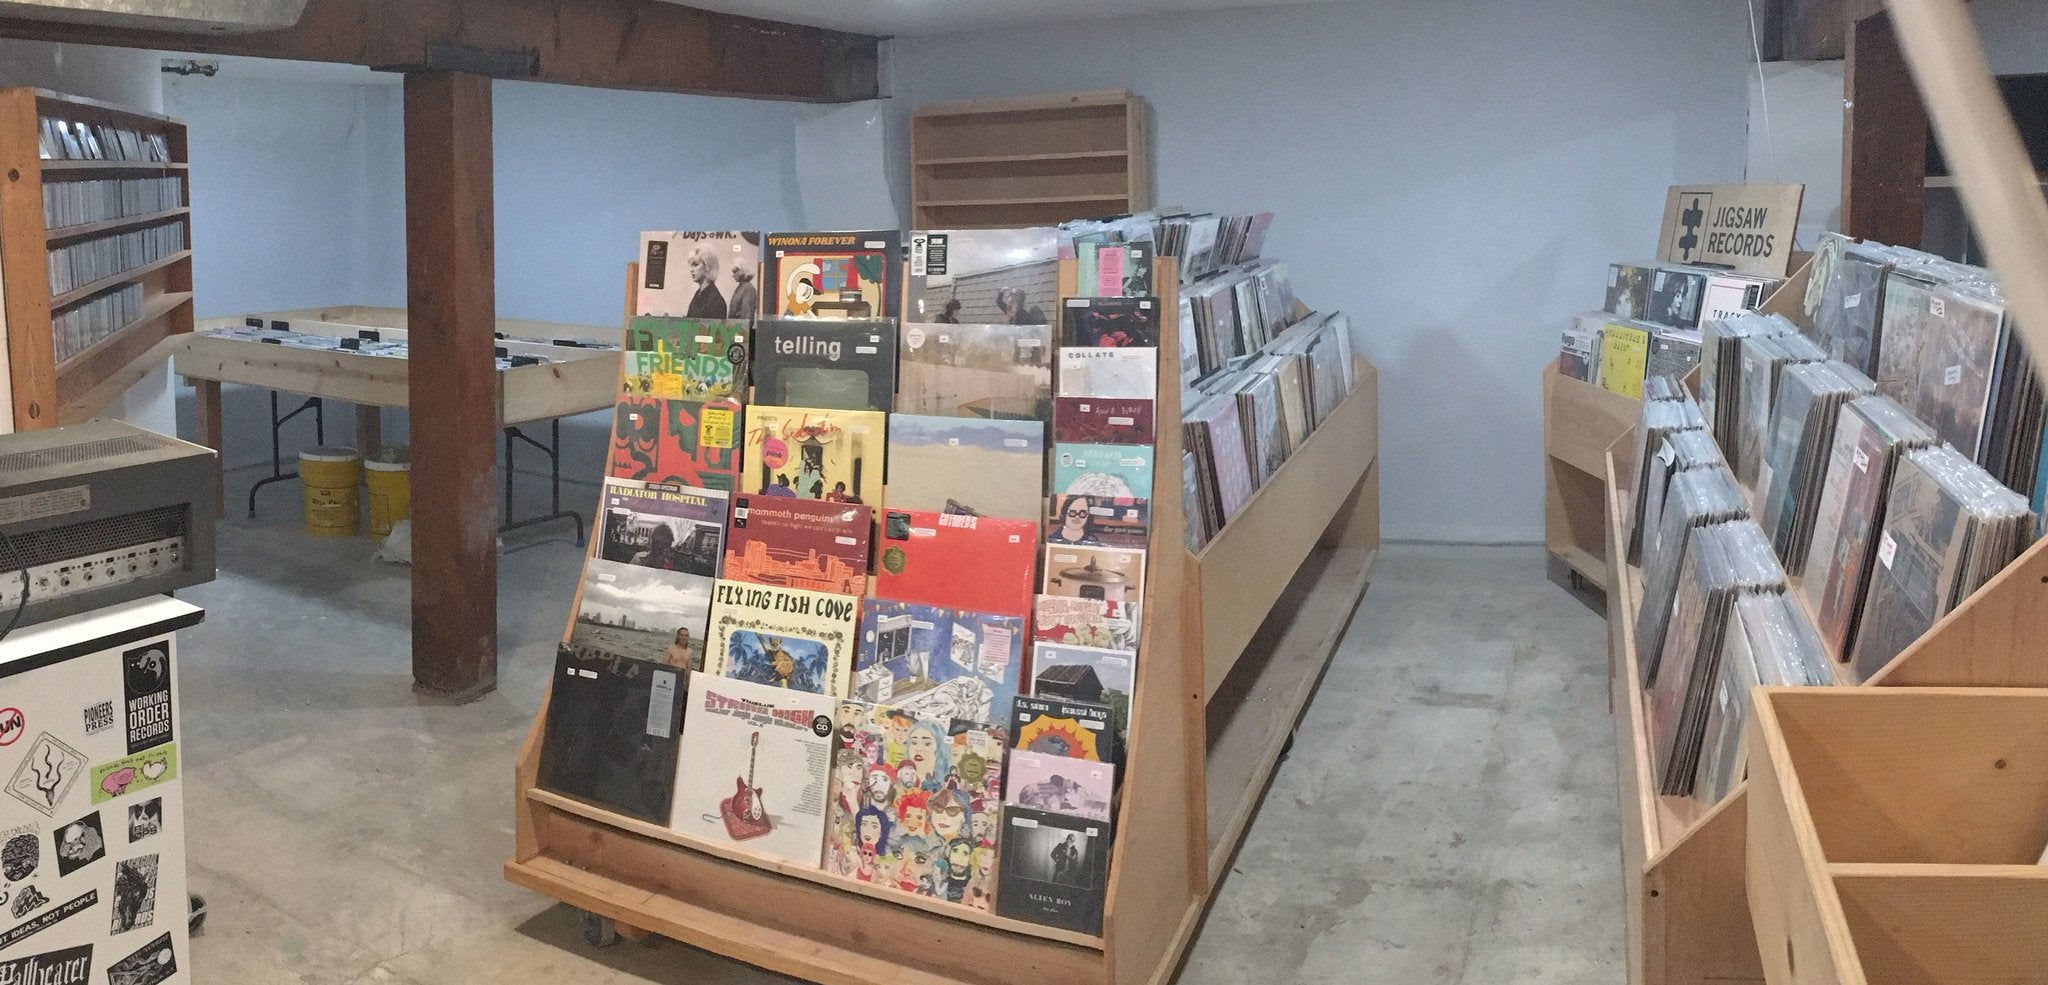 The Jigsaw Records shop!